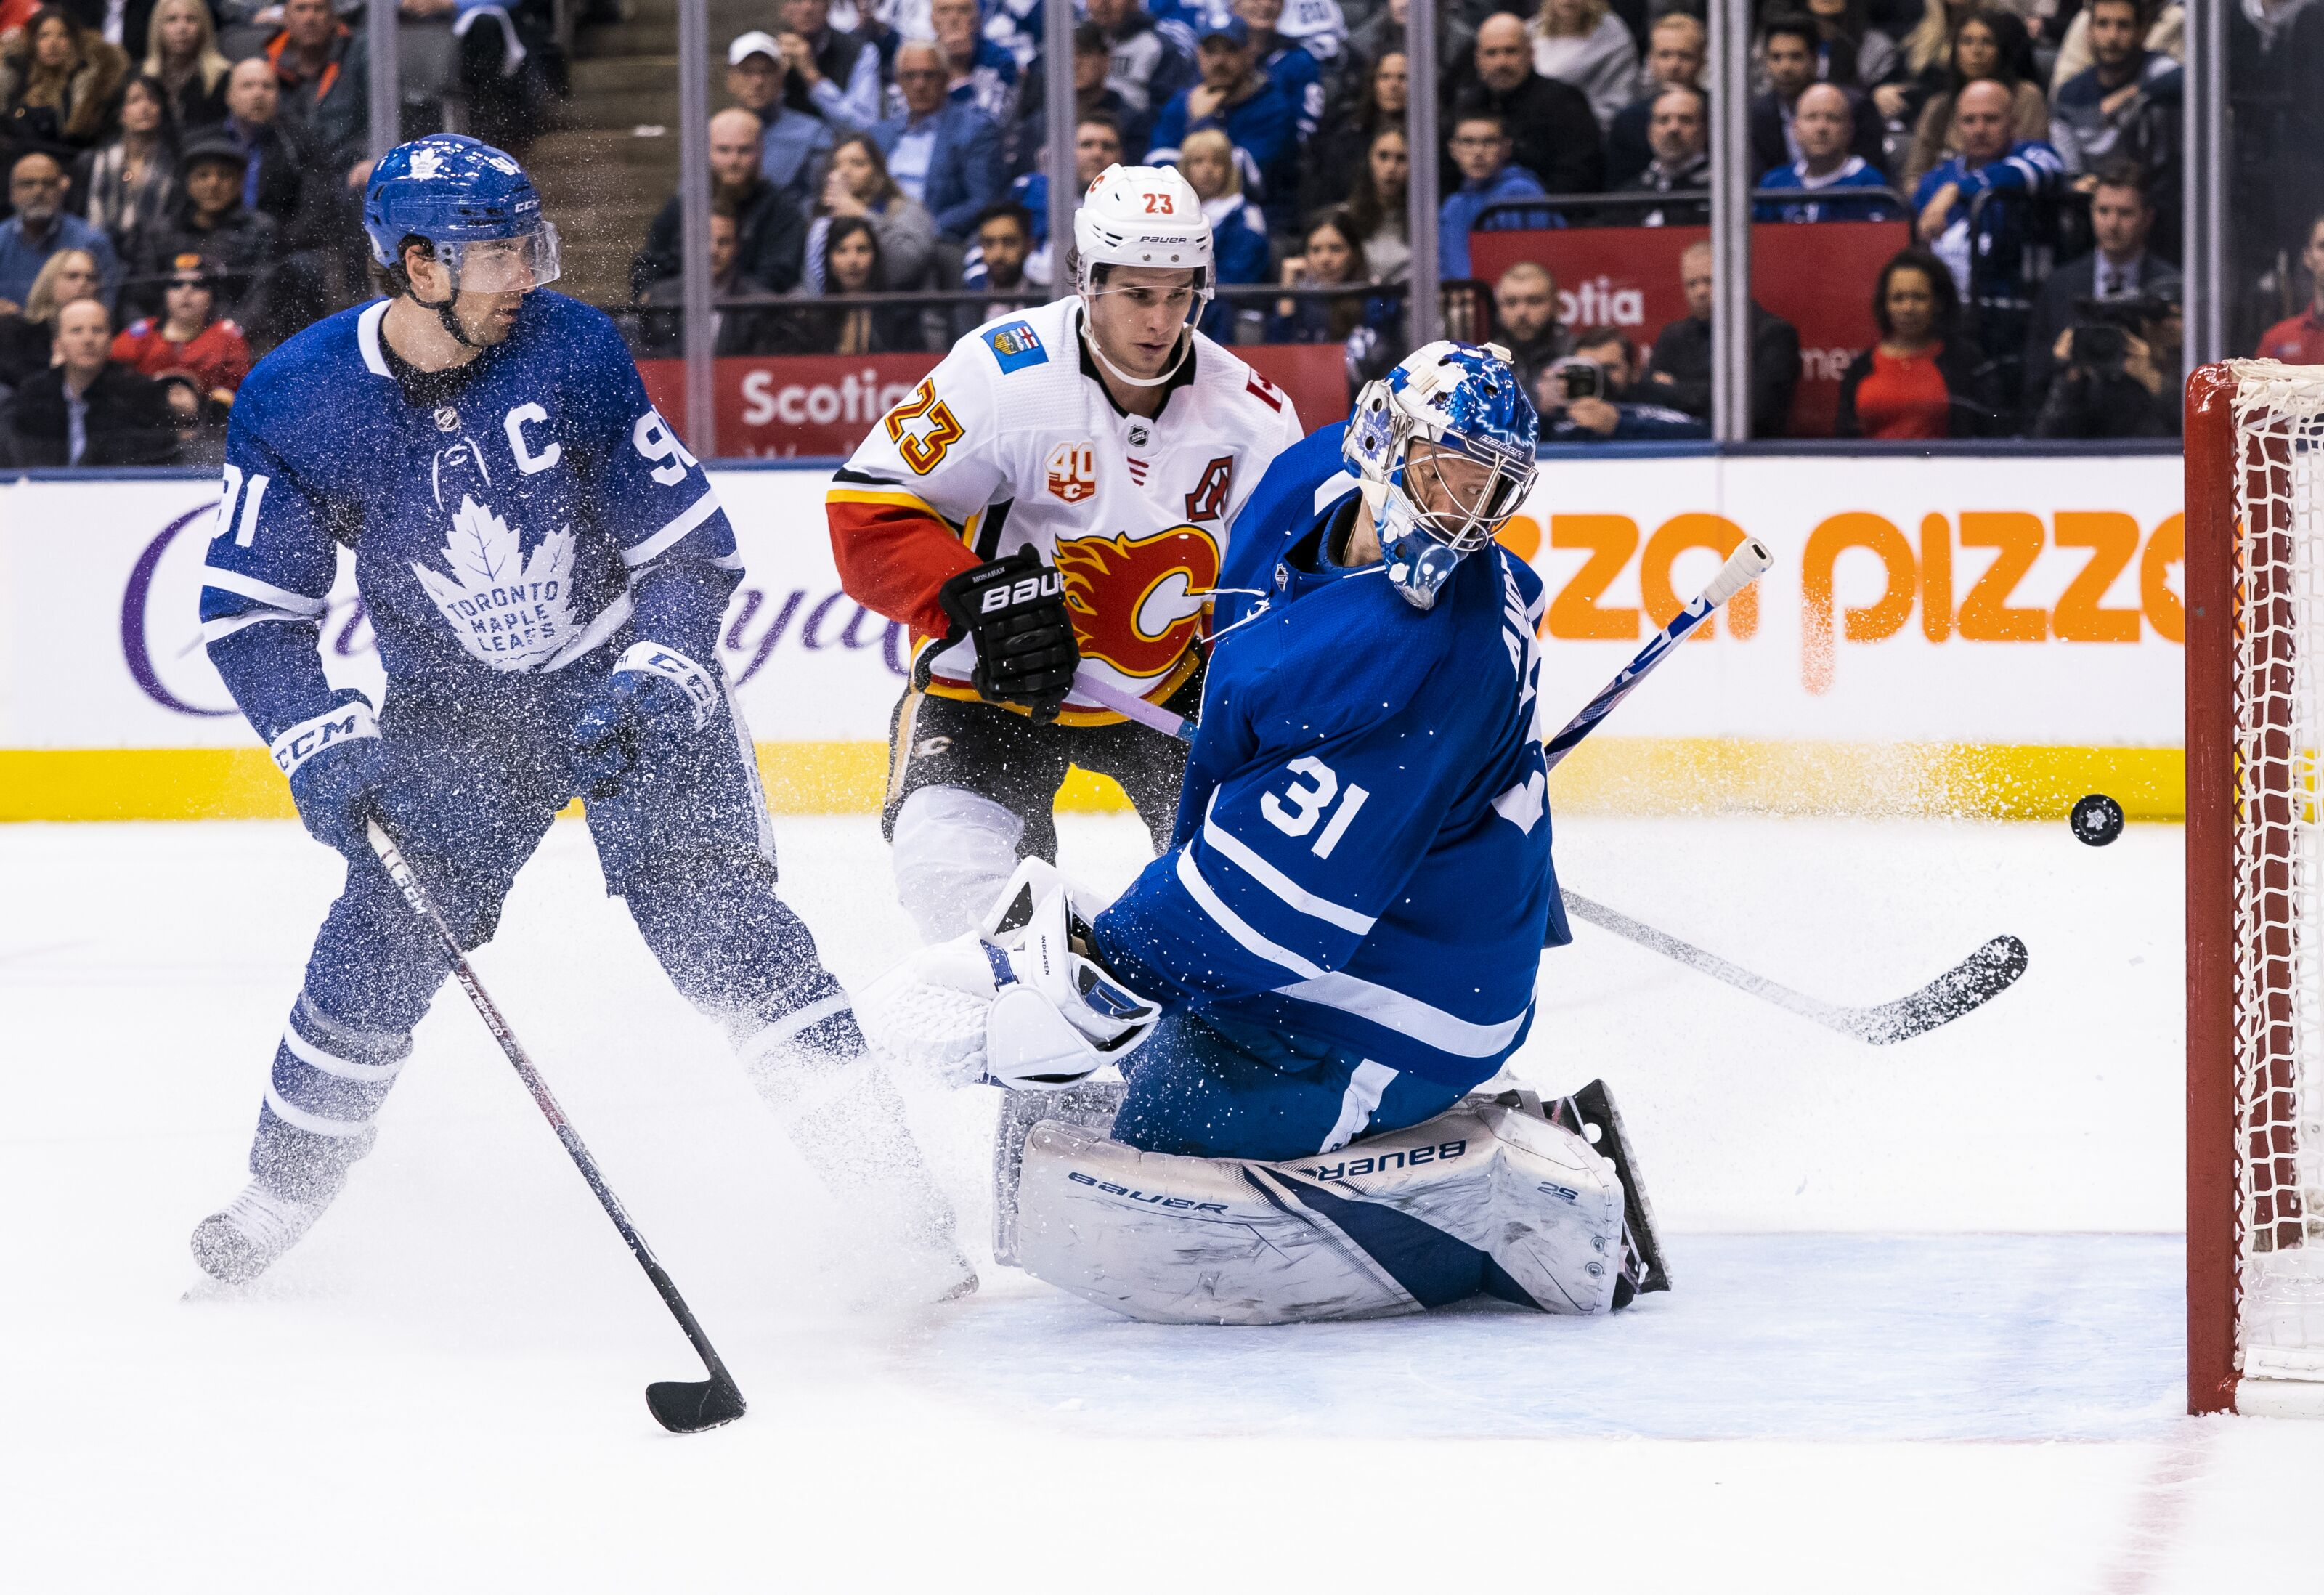 Toronto Maple Leafs Need to Make a Trade for a Goalie